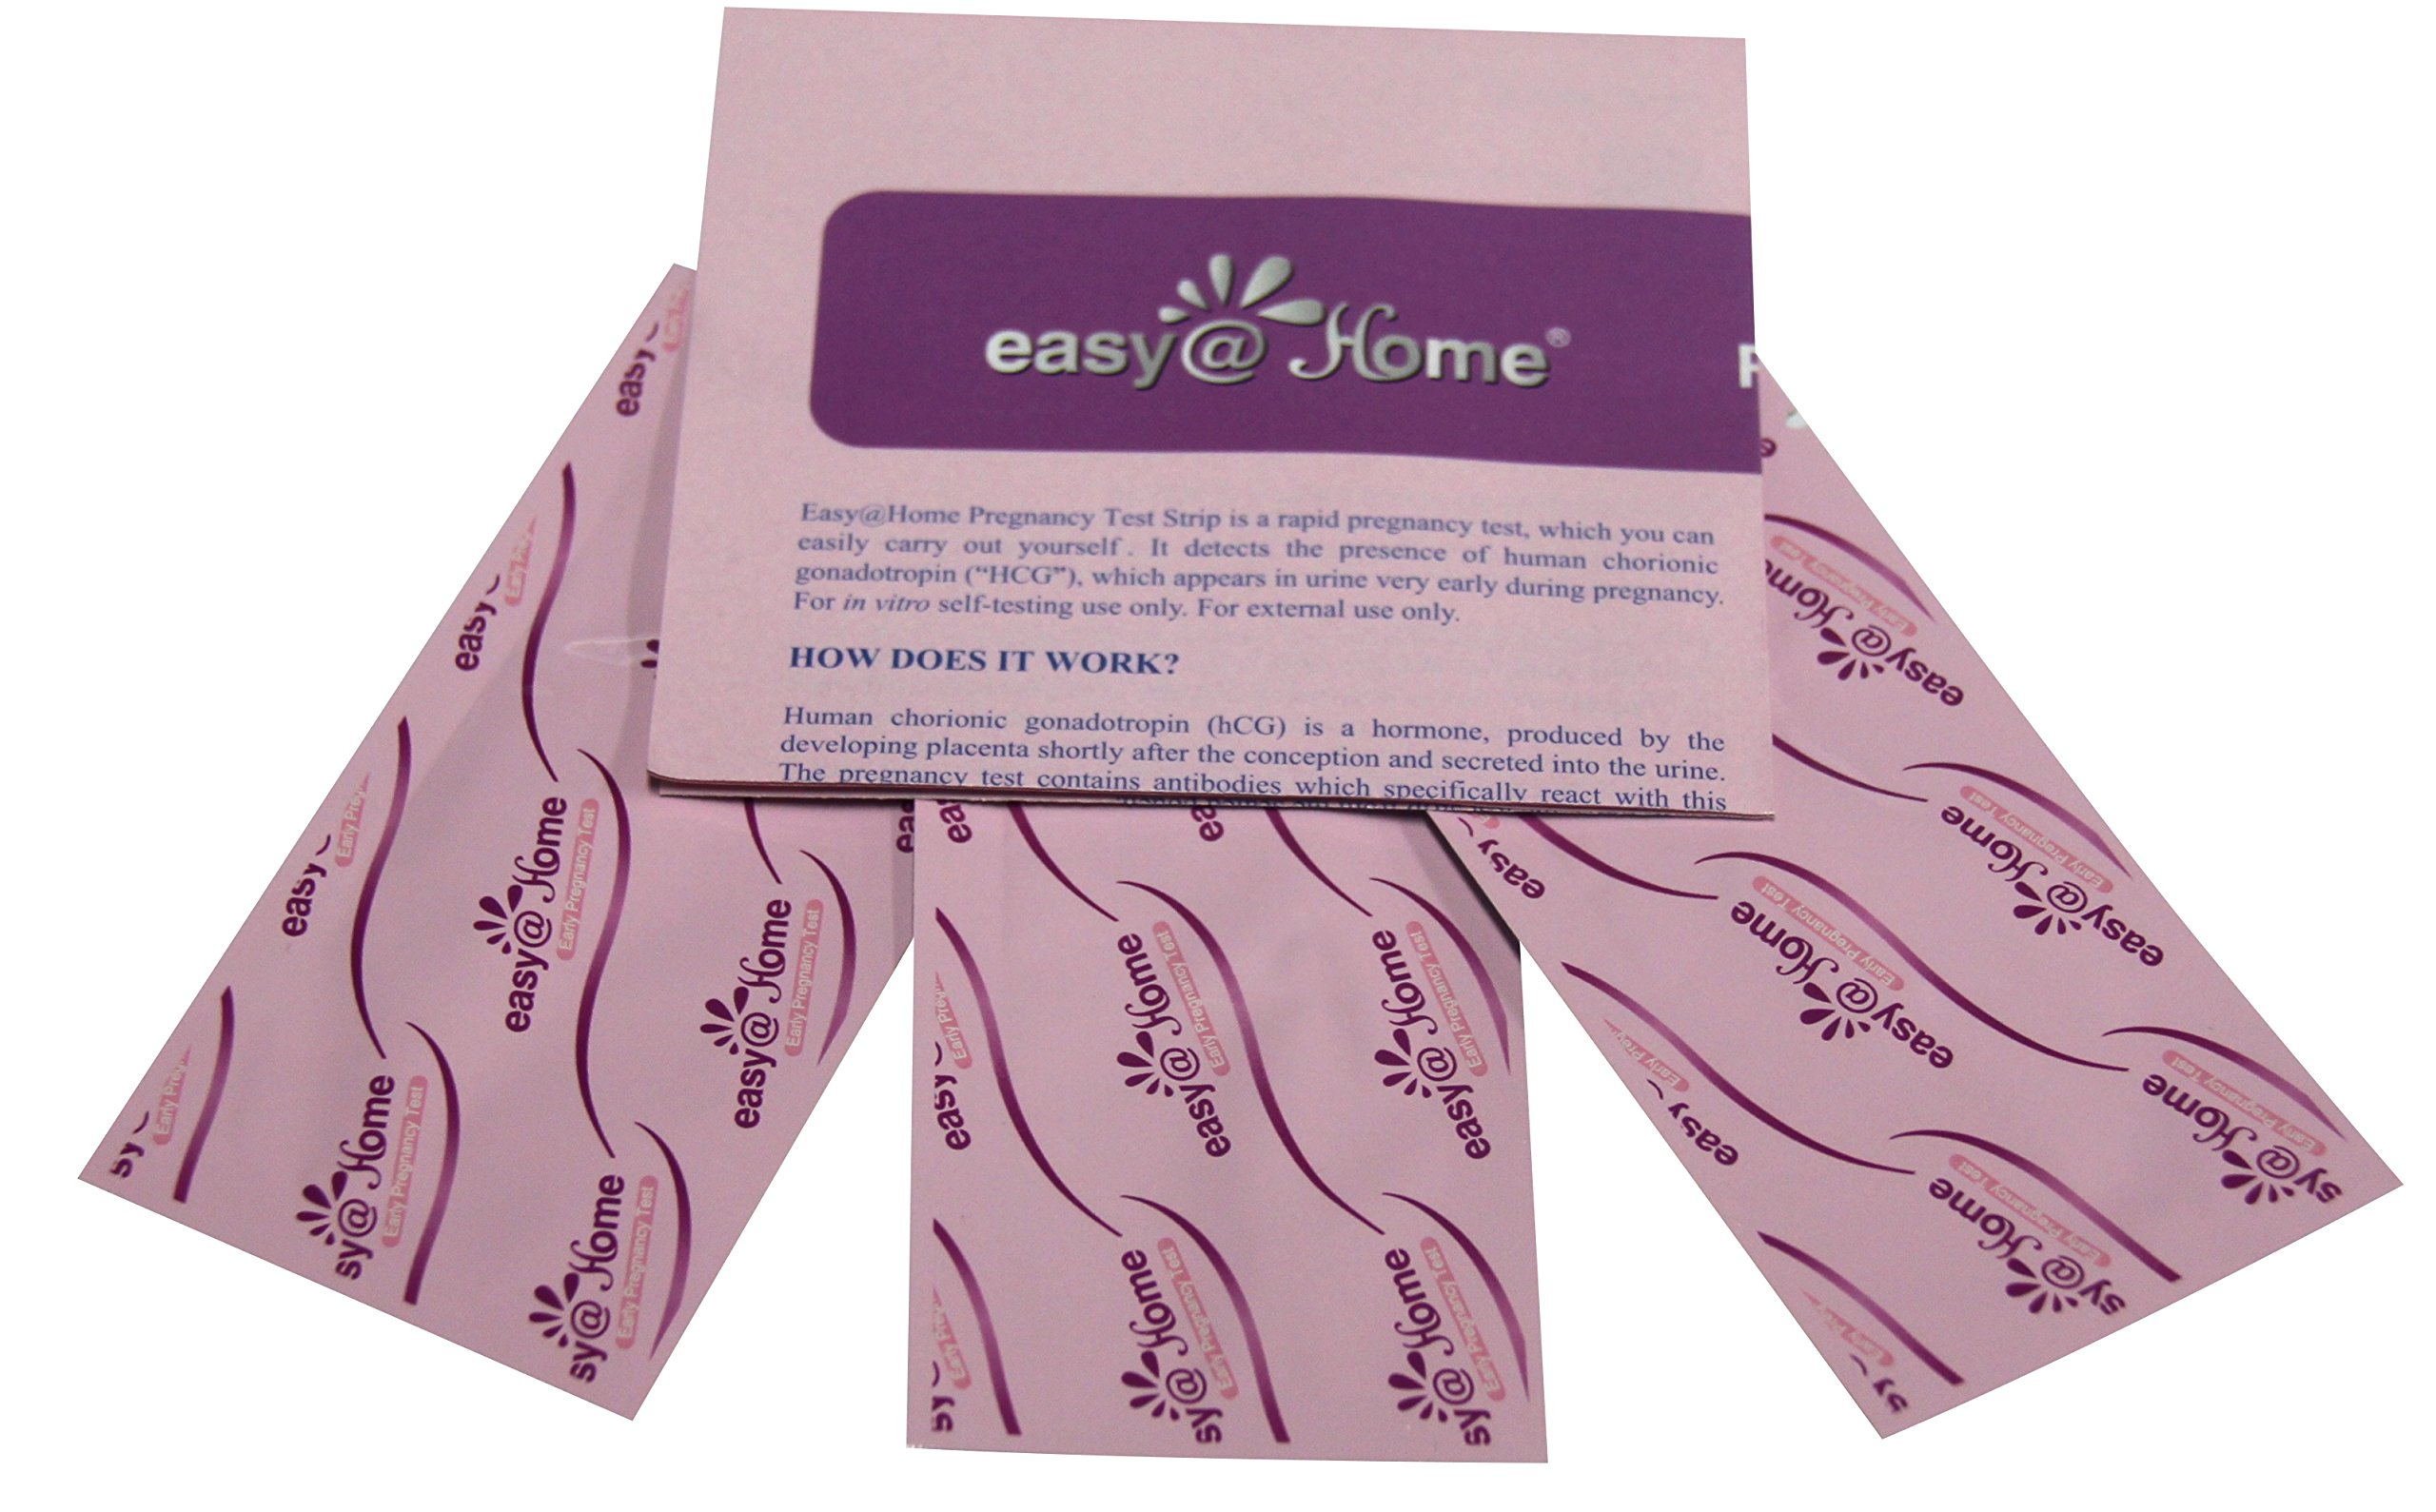 Easy@Home 500 Pregnancy (HCG) Urine Test Strips, Powered by Premom Ovulation Predictor iOS and Android APP, 500 HCG Tests